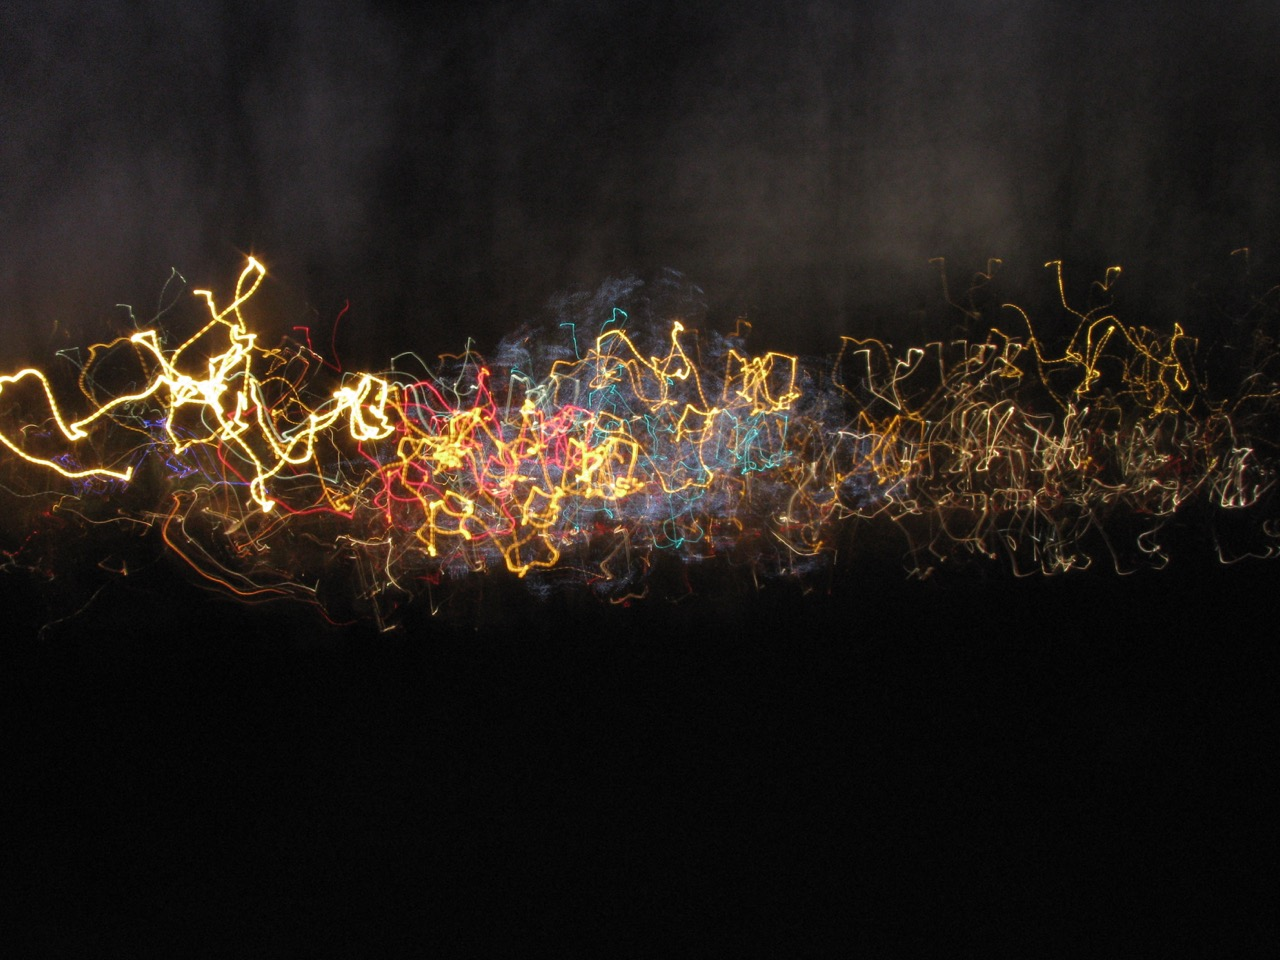 Image from research creation project Becoming a Sensor by Natasha Myers.